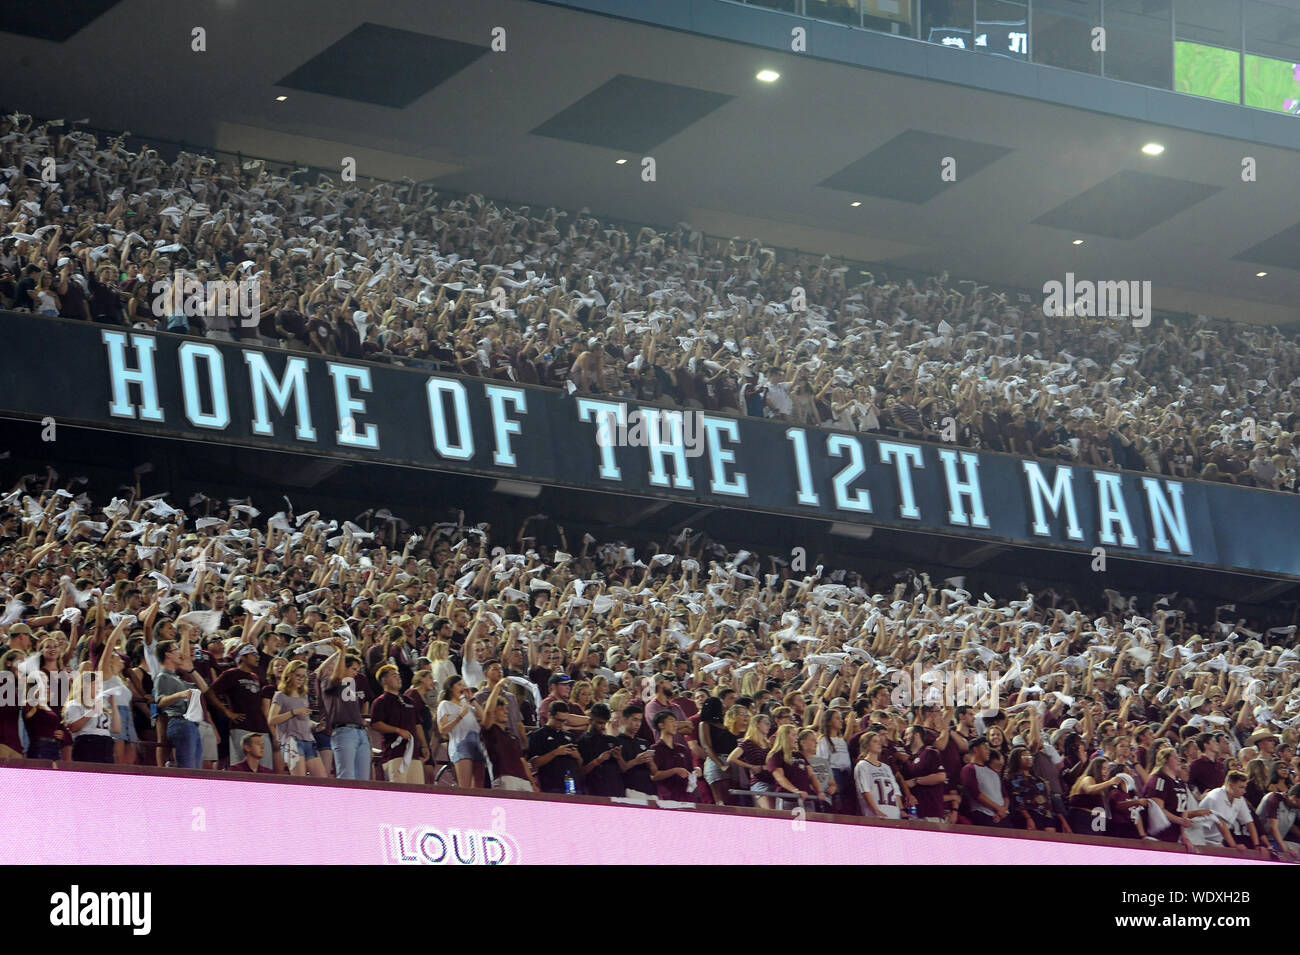 College Station, Texas, USA. 29th Aug, 2019. August 29, 2019: Texas A&M Aggies fans waving their rally flags on 3rd down during the game between the Texas State University Bobcats and the Texas A&M University Aggies at Kyle Field Stadium in College Station, TX. Texas A&M Aggies leads the first half against Texas State Bobcats, 28-0. Patrick Green/CSM Credit: Cal Sport Media/Alamy Live News Stock Photo